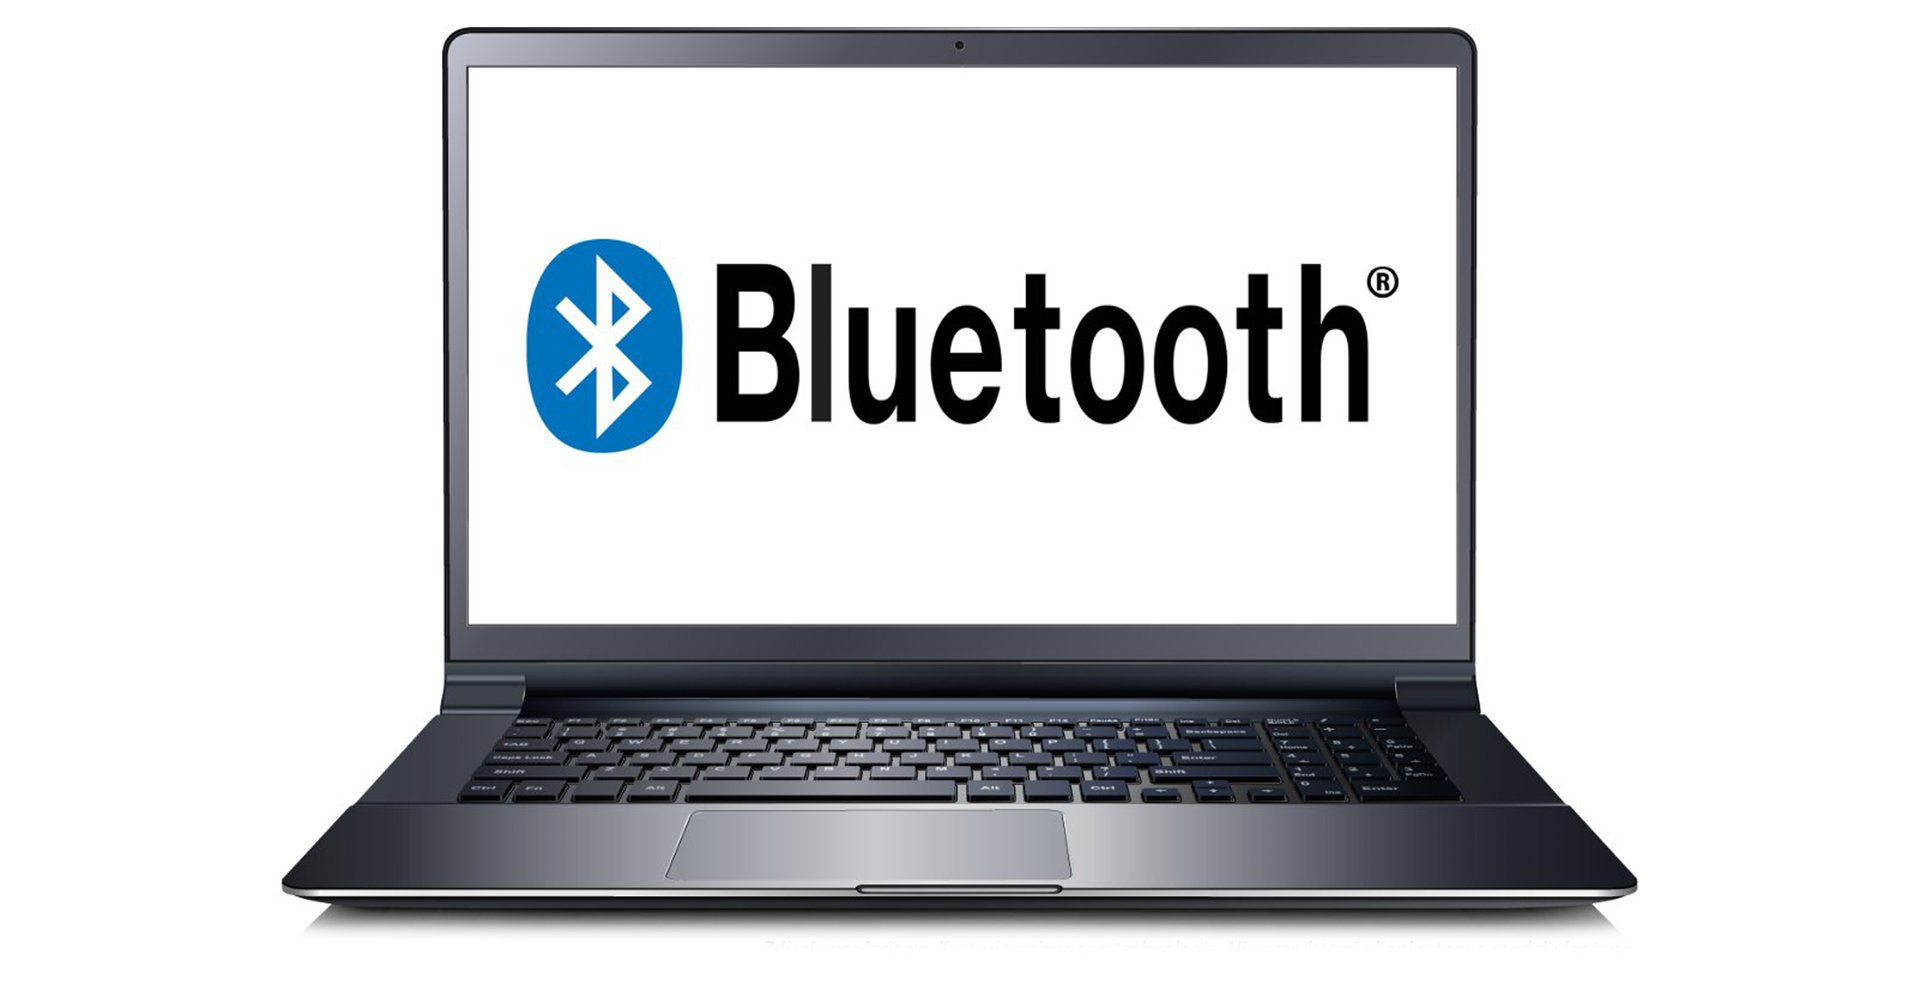 Dell Latitude E6420 i5-2520M 8GB 250GB WIN10                             Bluetooth